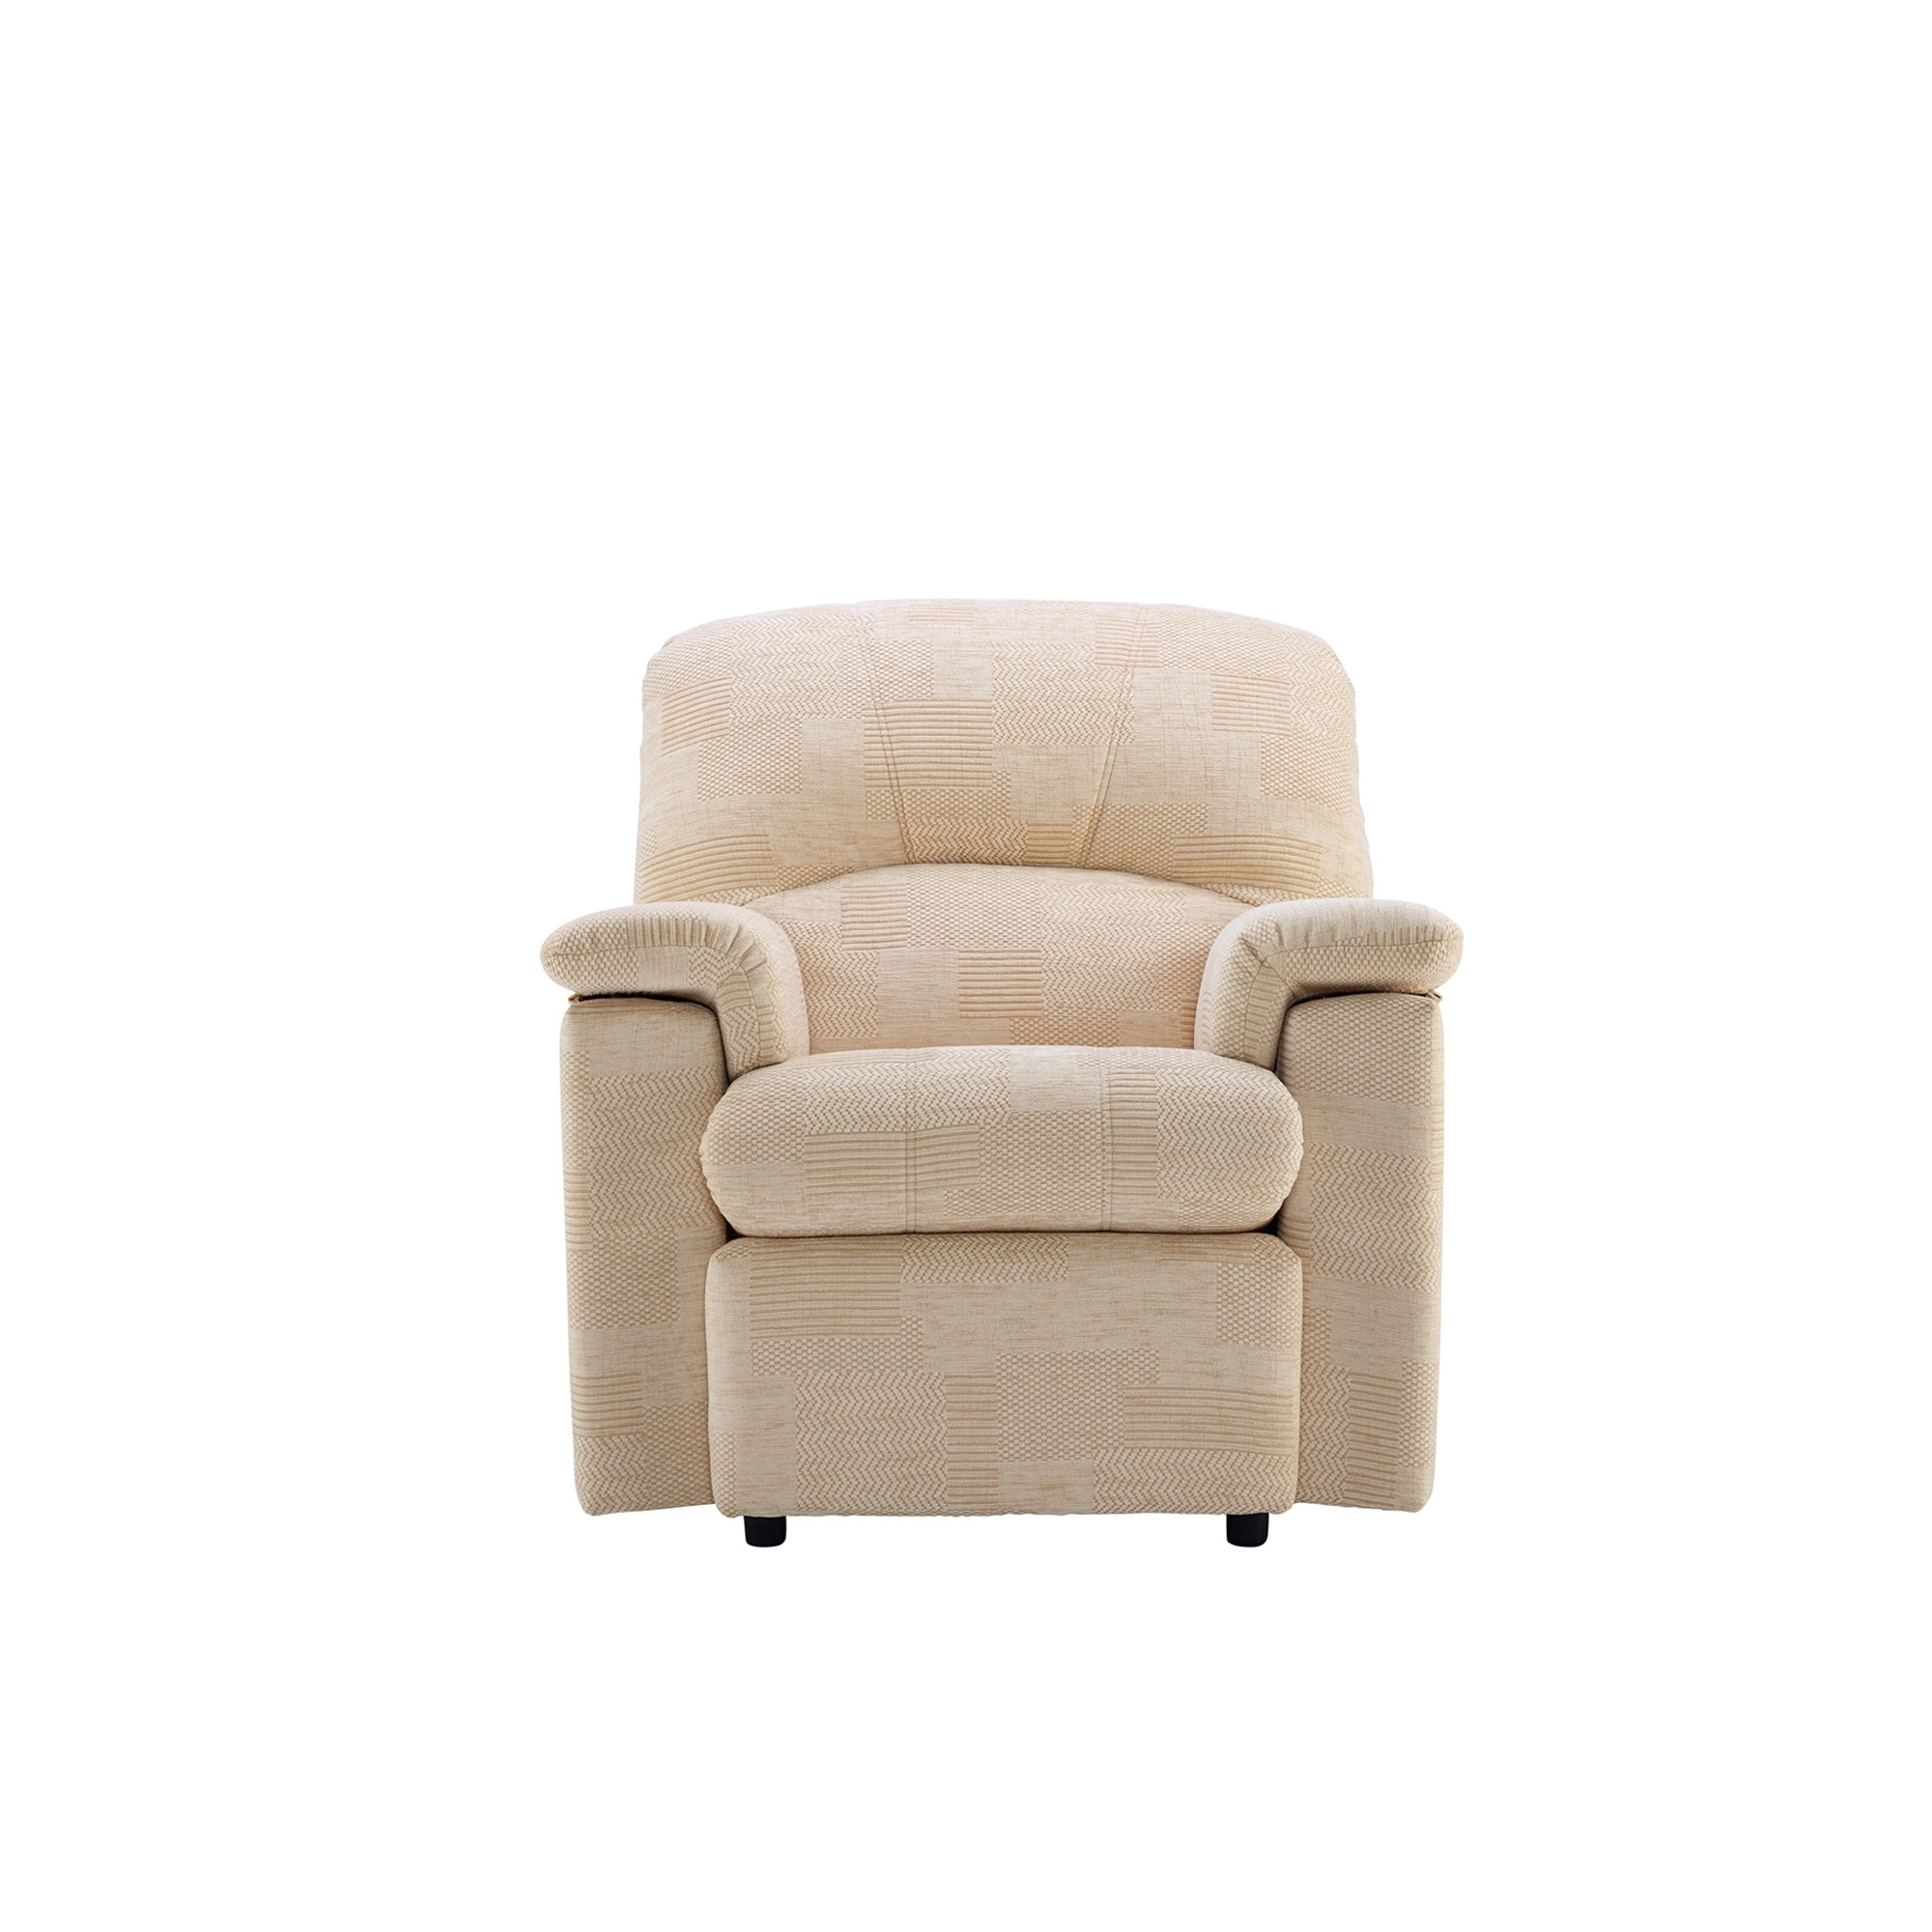 G Plan Chloe Power Recliner Armchair - All Chairs - Cookes ...